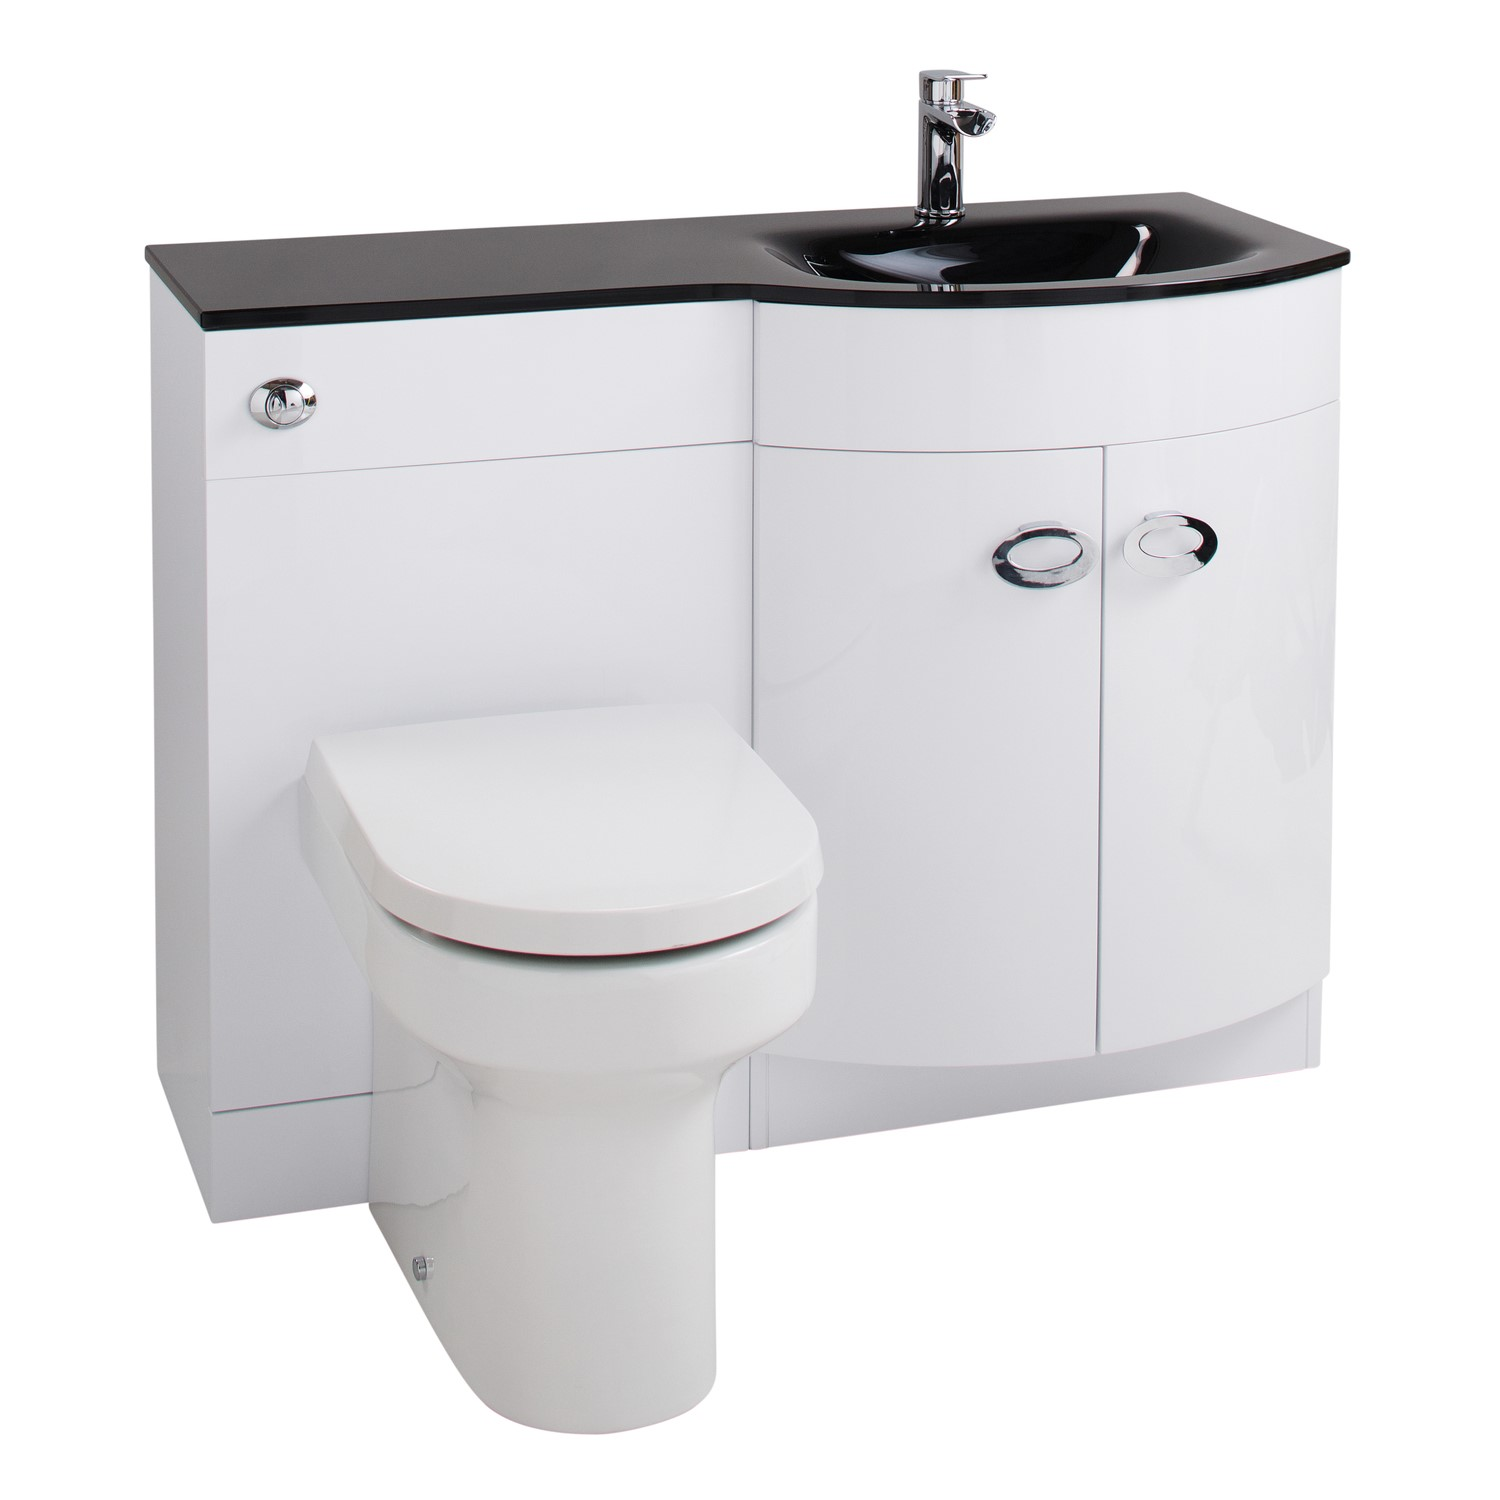 Brilliant White Right Hand Vanity Unit Black Glass Basin Without Toilet Home Interior And Landscaping Transignezvosmurscom